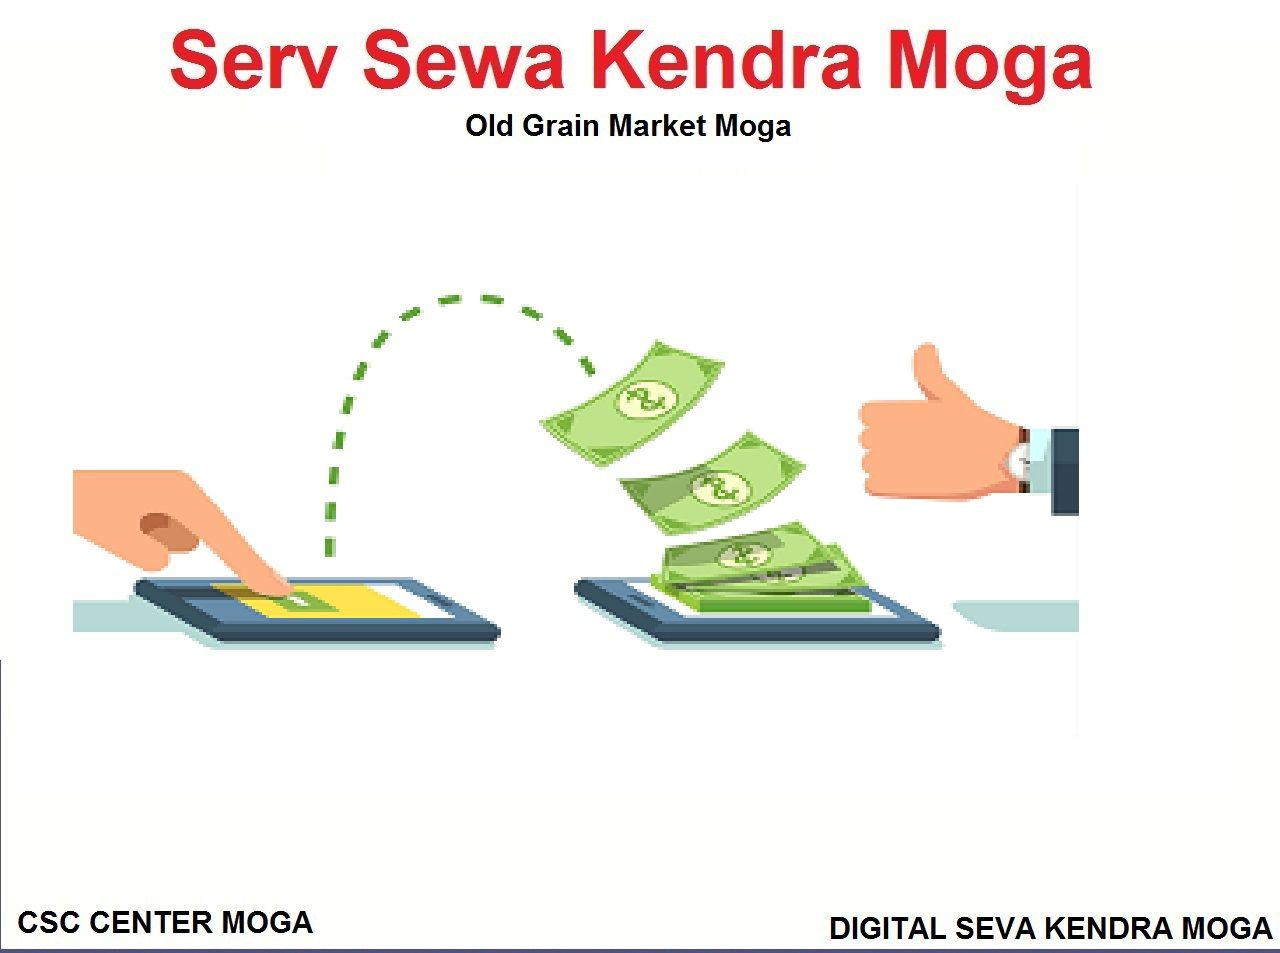 Money Transfer Service Send Money To Any Bank Account In India Without Aadhaar Money Transfer In Moga Serv Sewa Kendra Moga O In 2020 Moga Voter Card Money Transfer